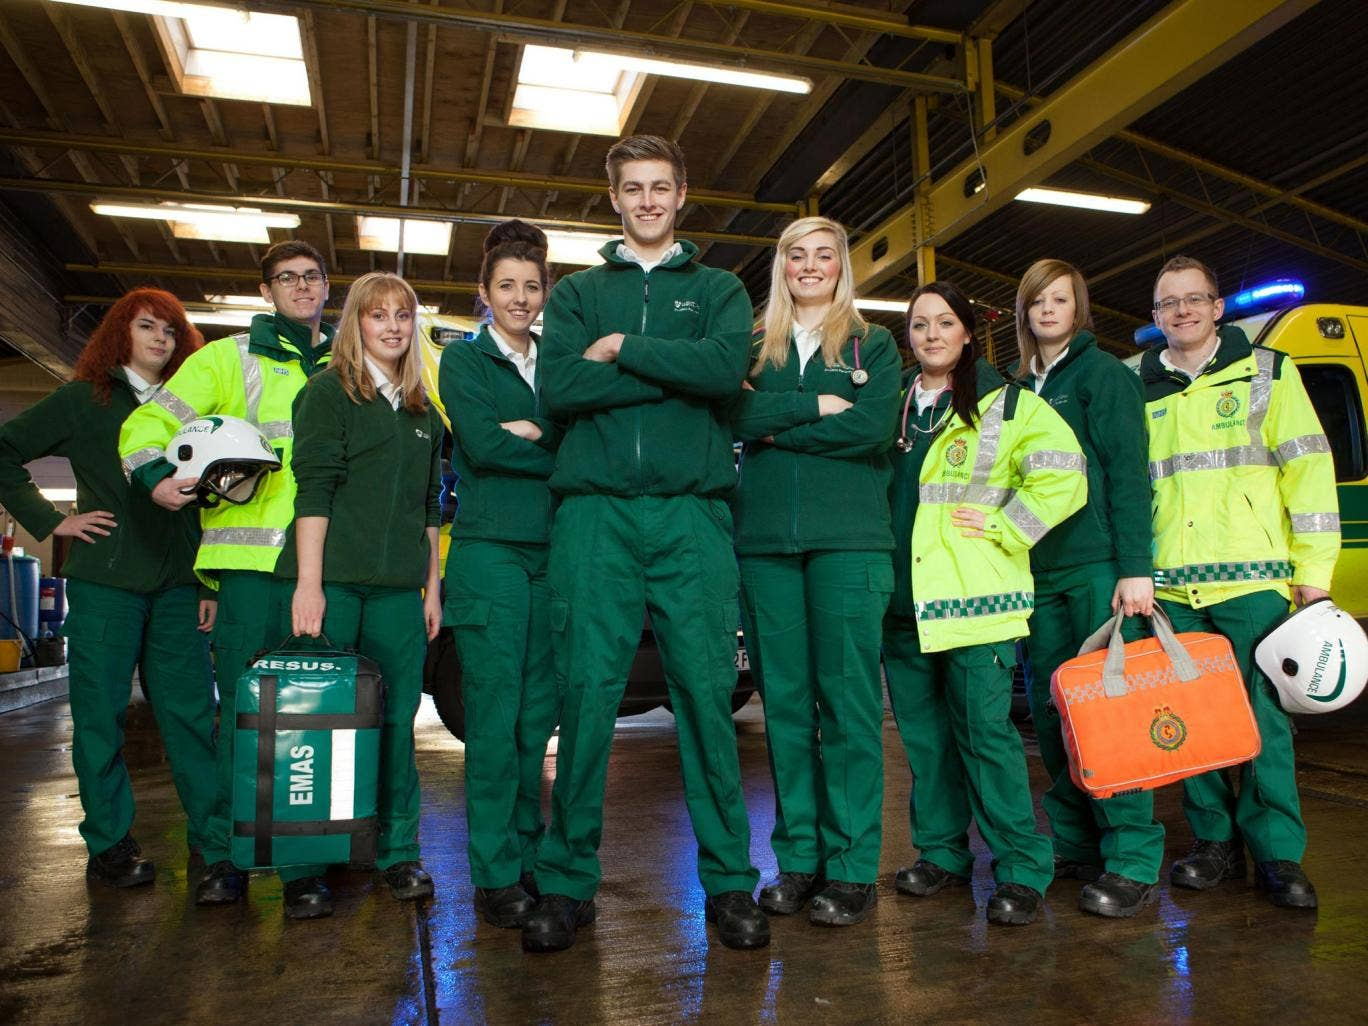 Road to recovery: the young recruits in Junior Paramedics